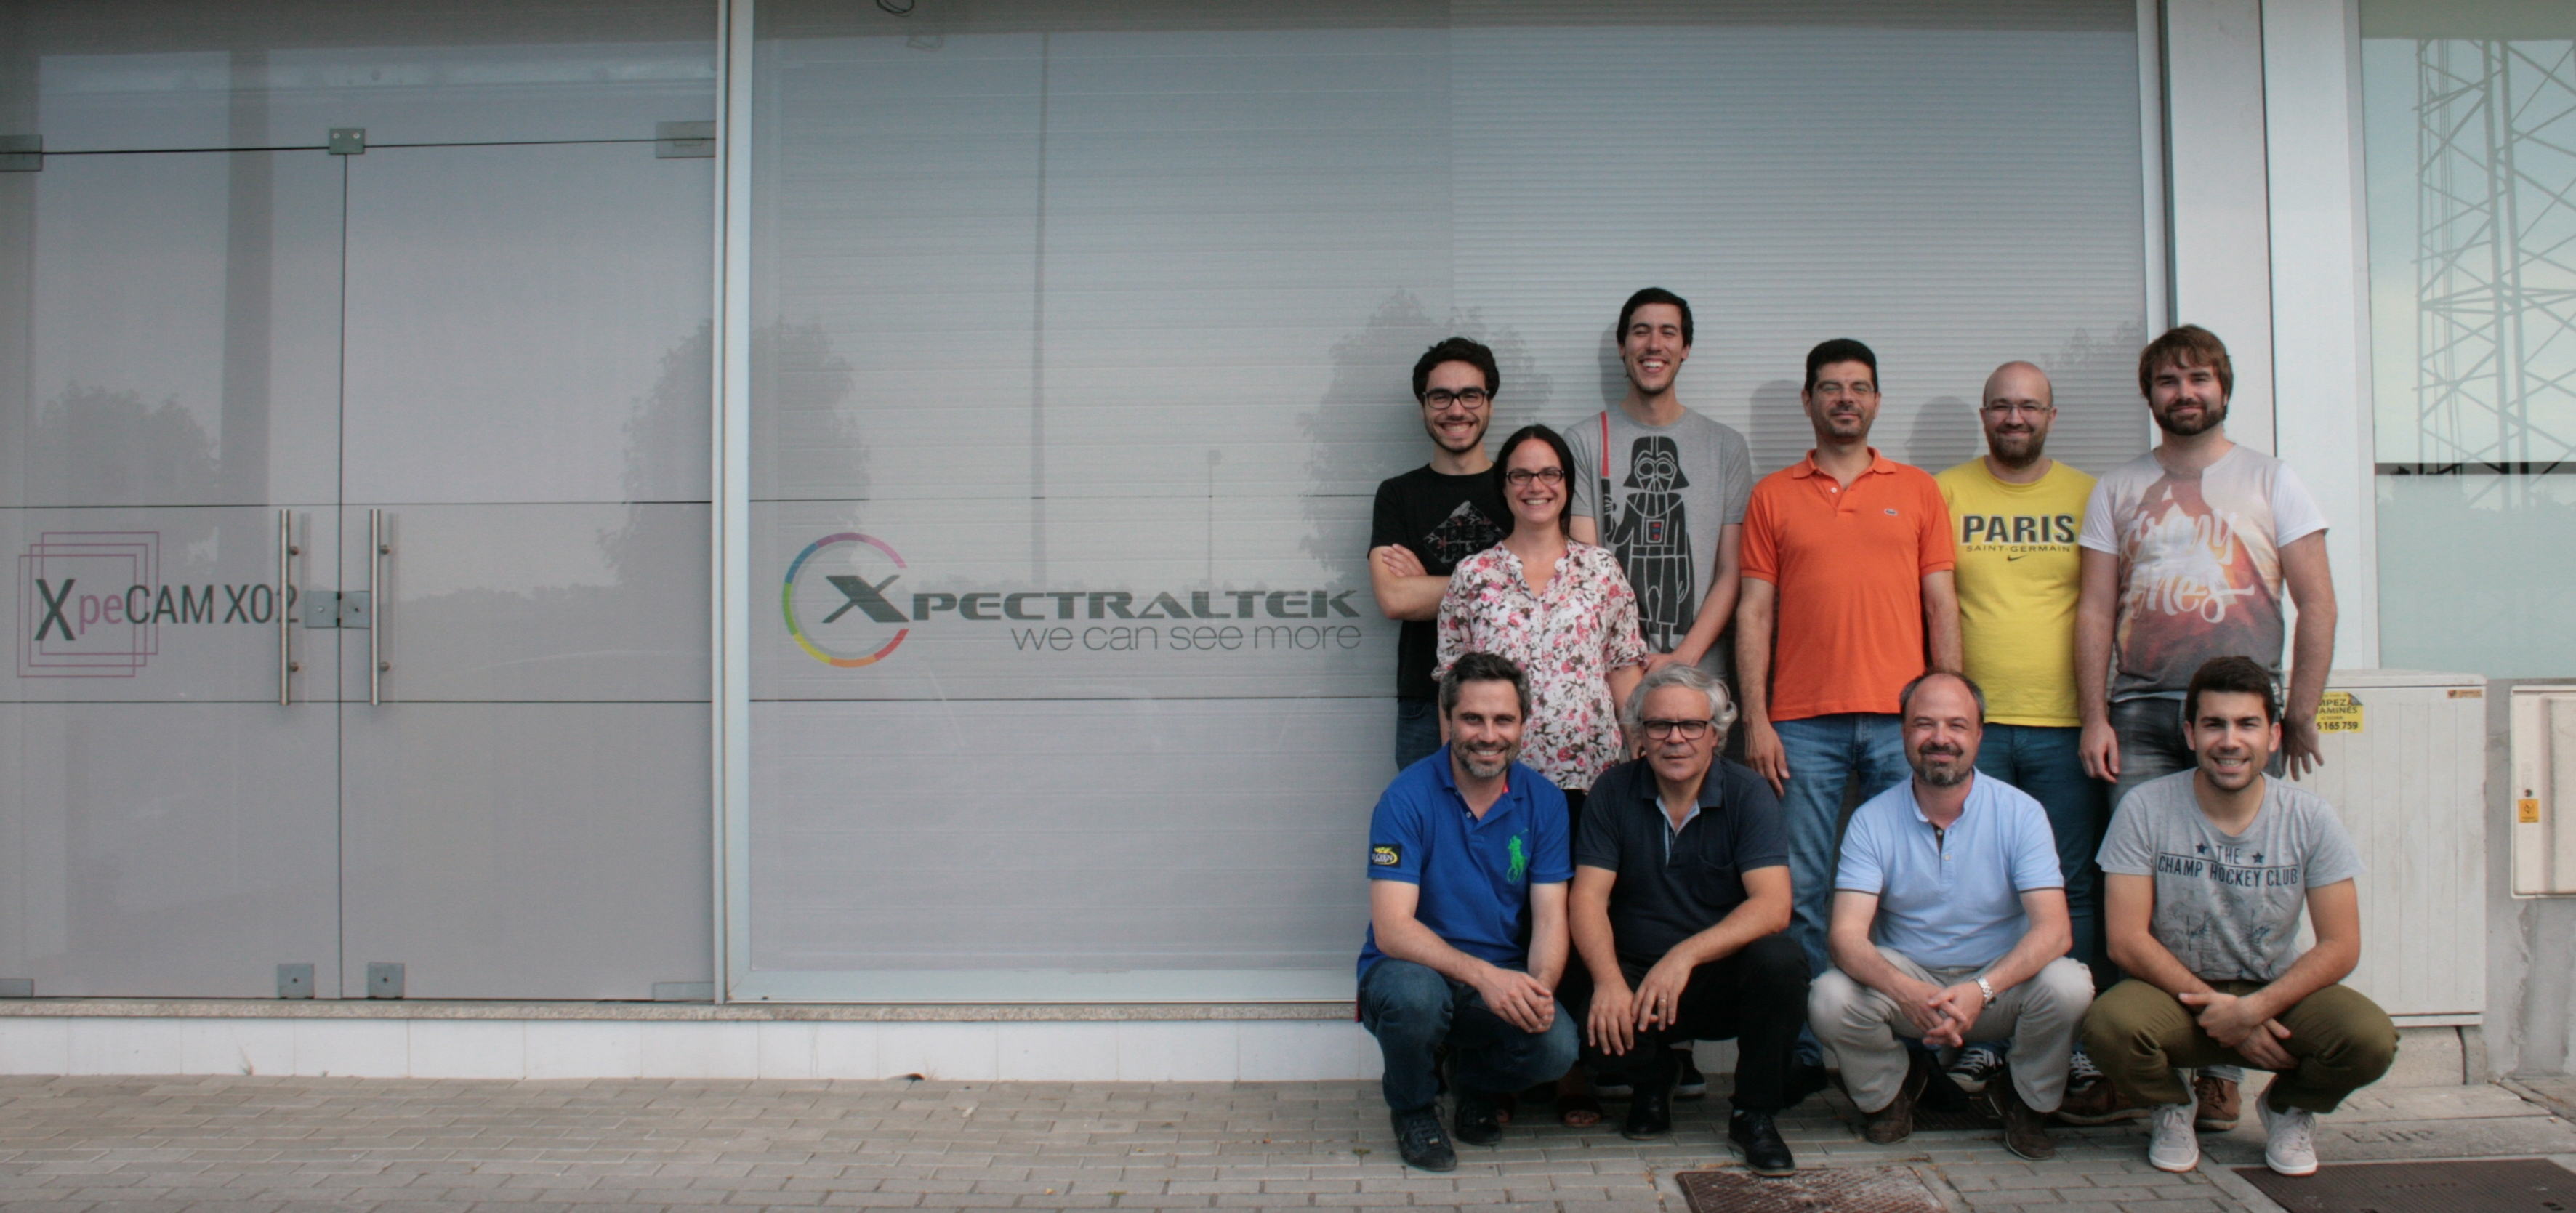 XpectralTEK staff portrait. Image courtesy of XpectralTEK.